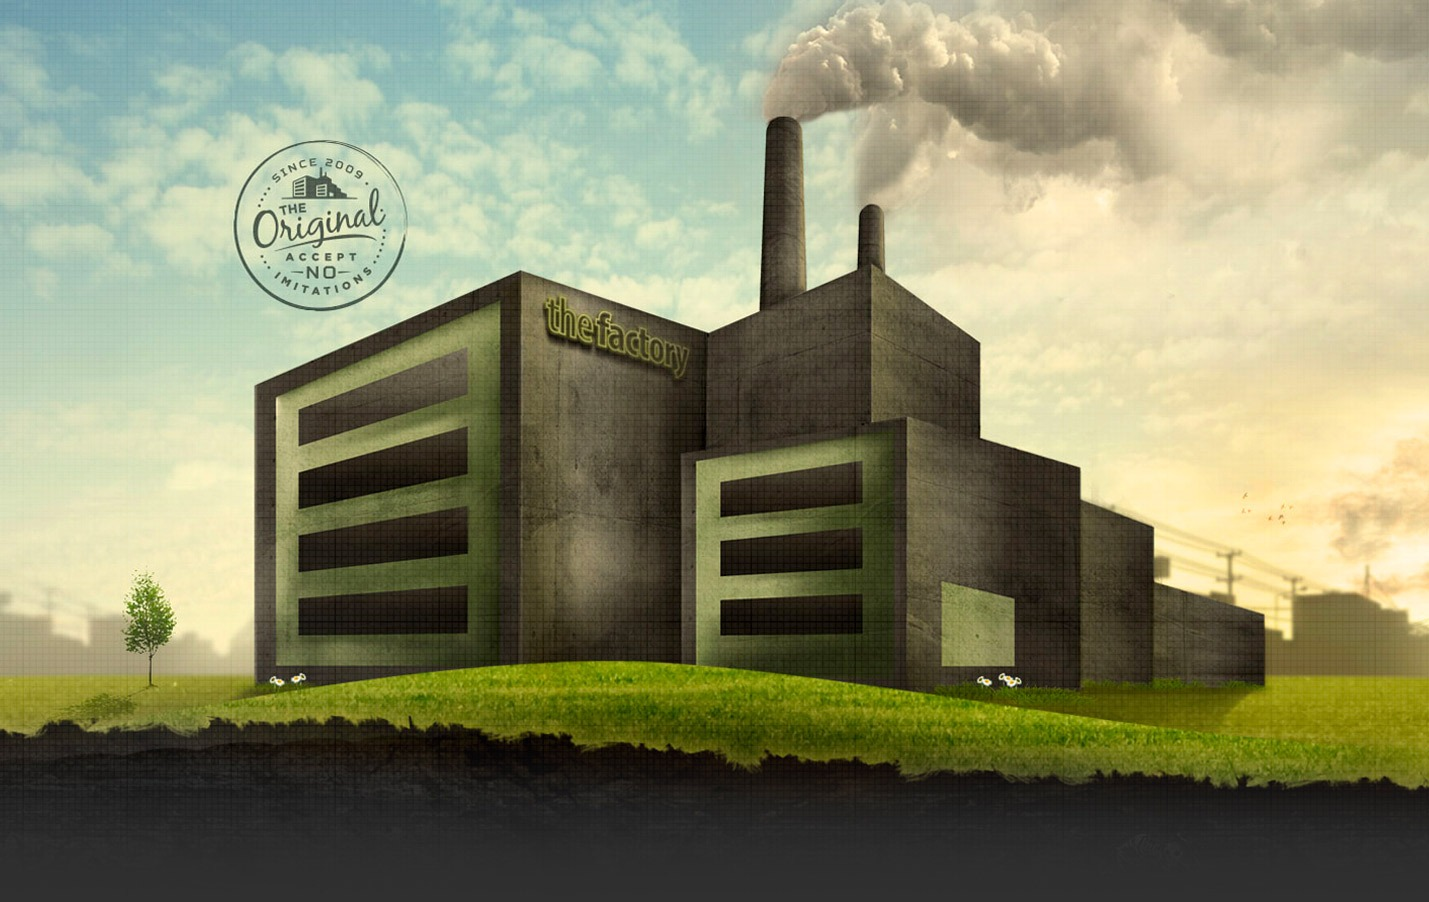 Illustration of a factory with steam on a blue sky and green grass background